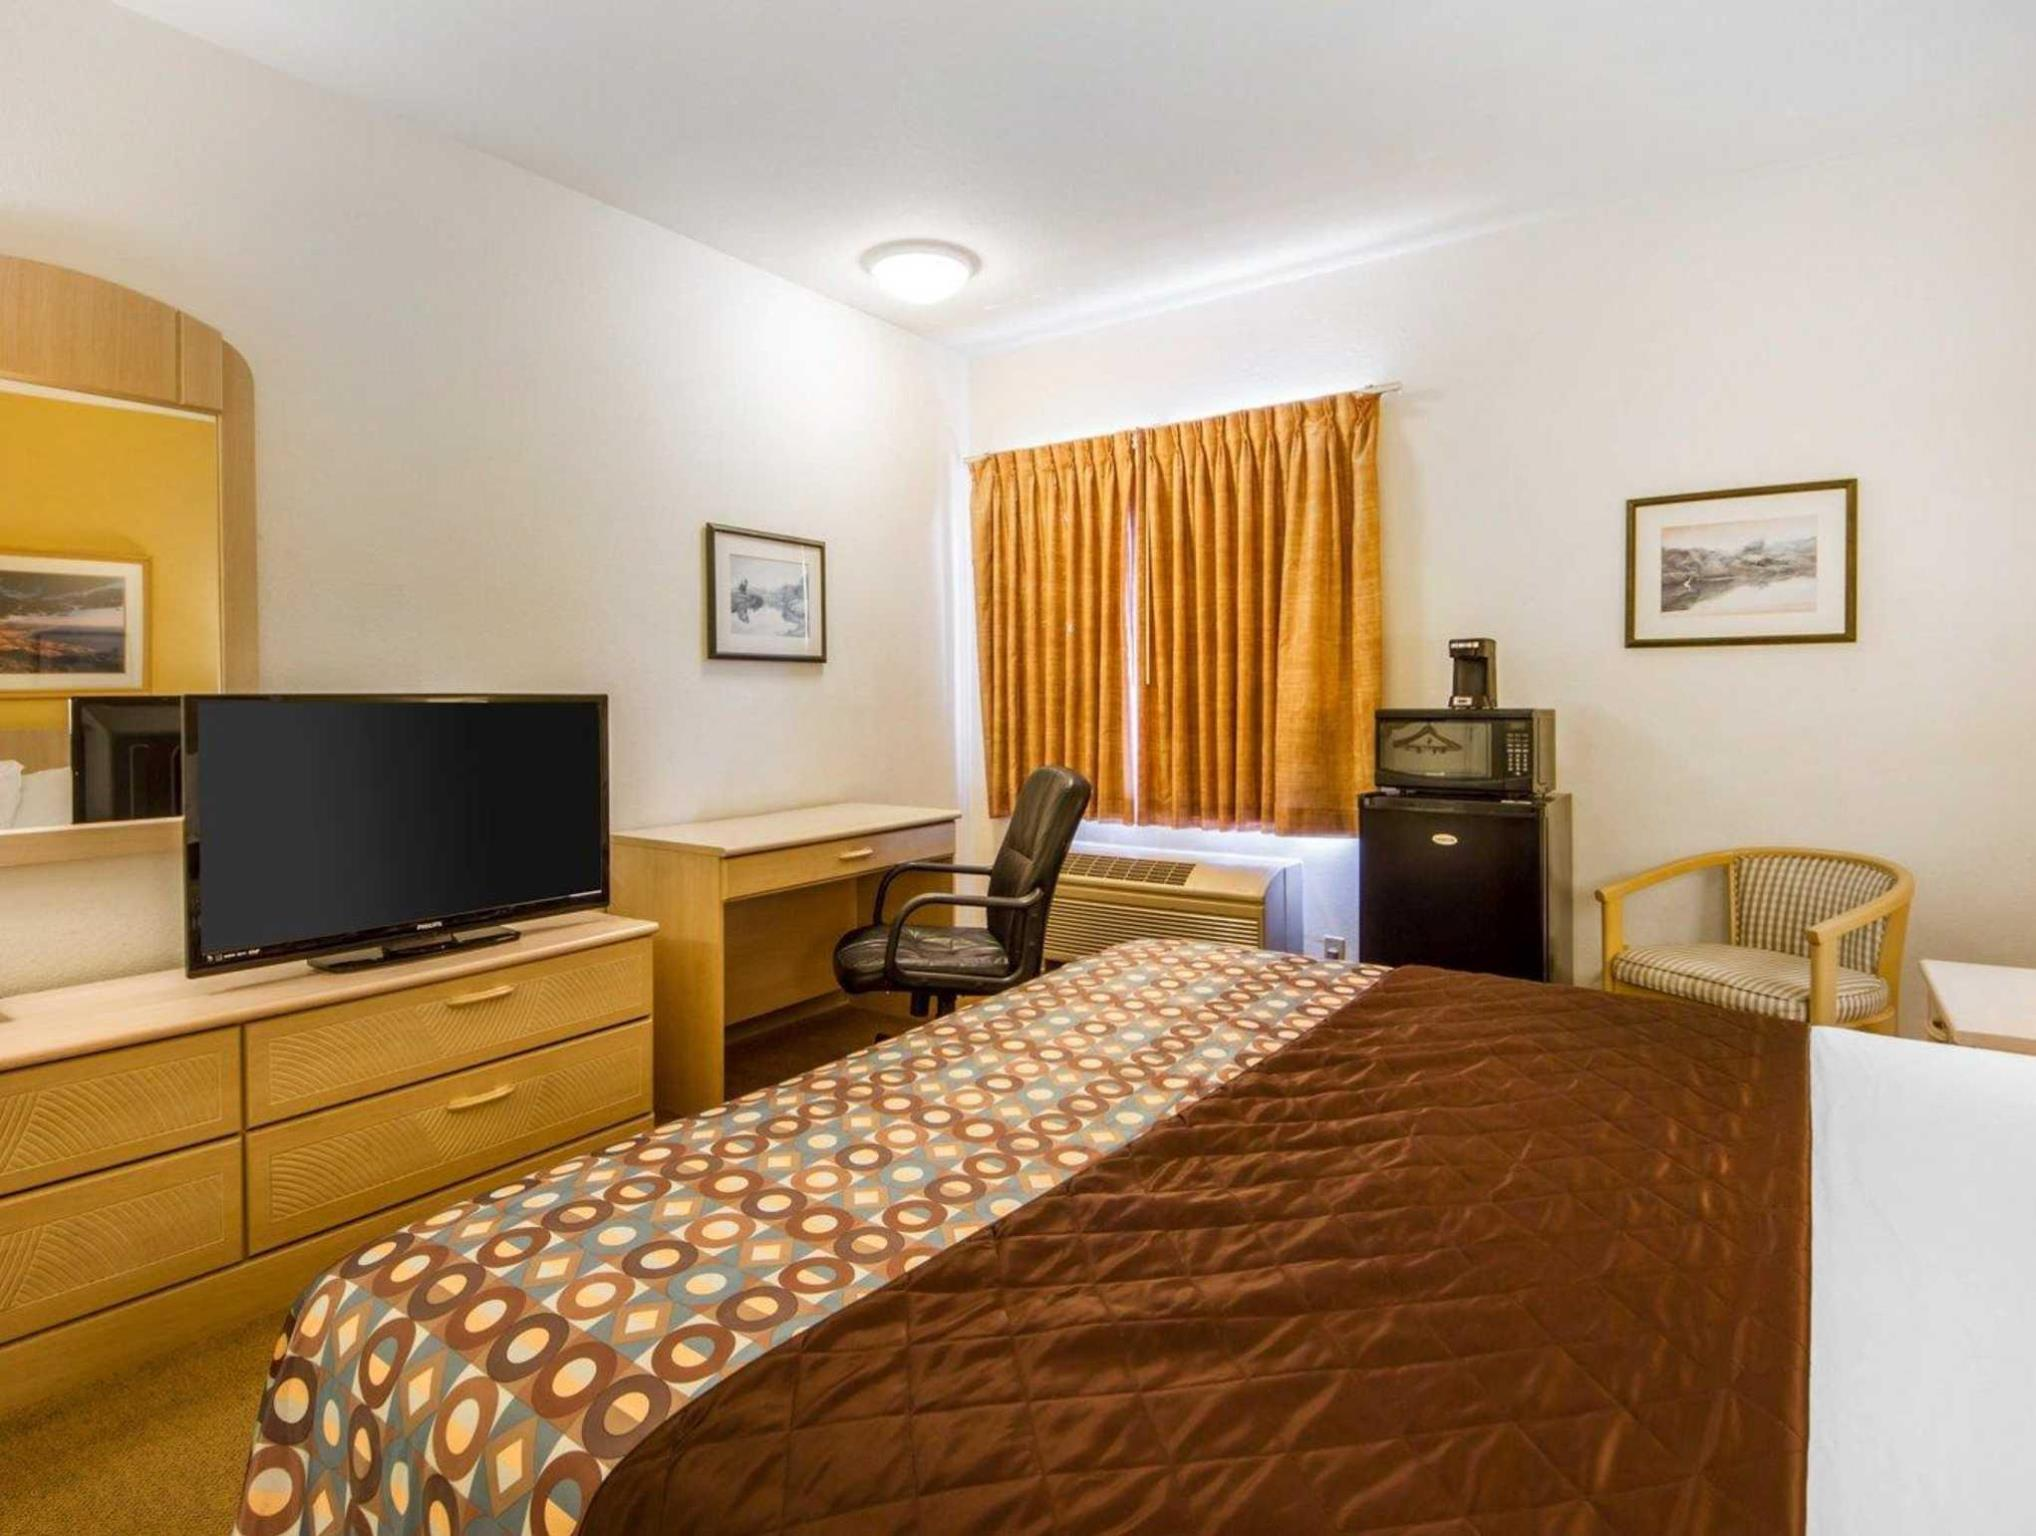 1 King Bed - No Smoking - Free Internet In Room - Free Breakfast - Free Parking - Fridge - Microwave